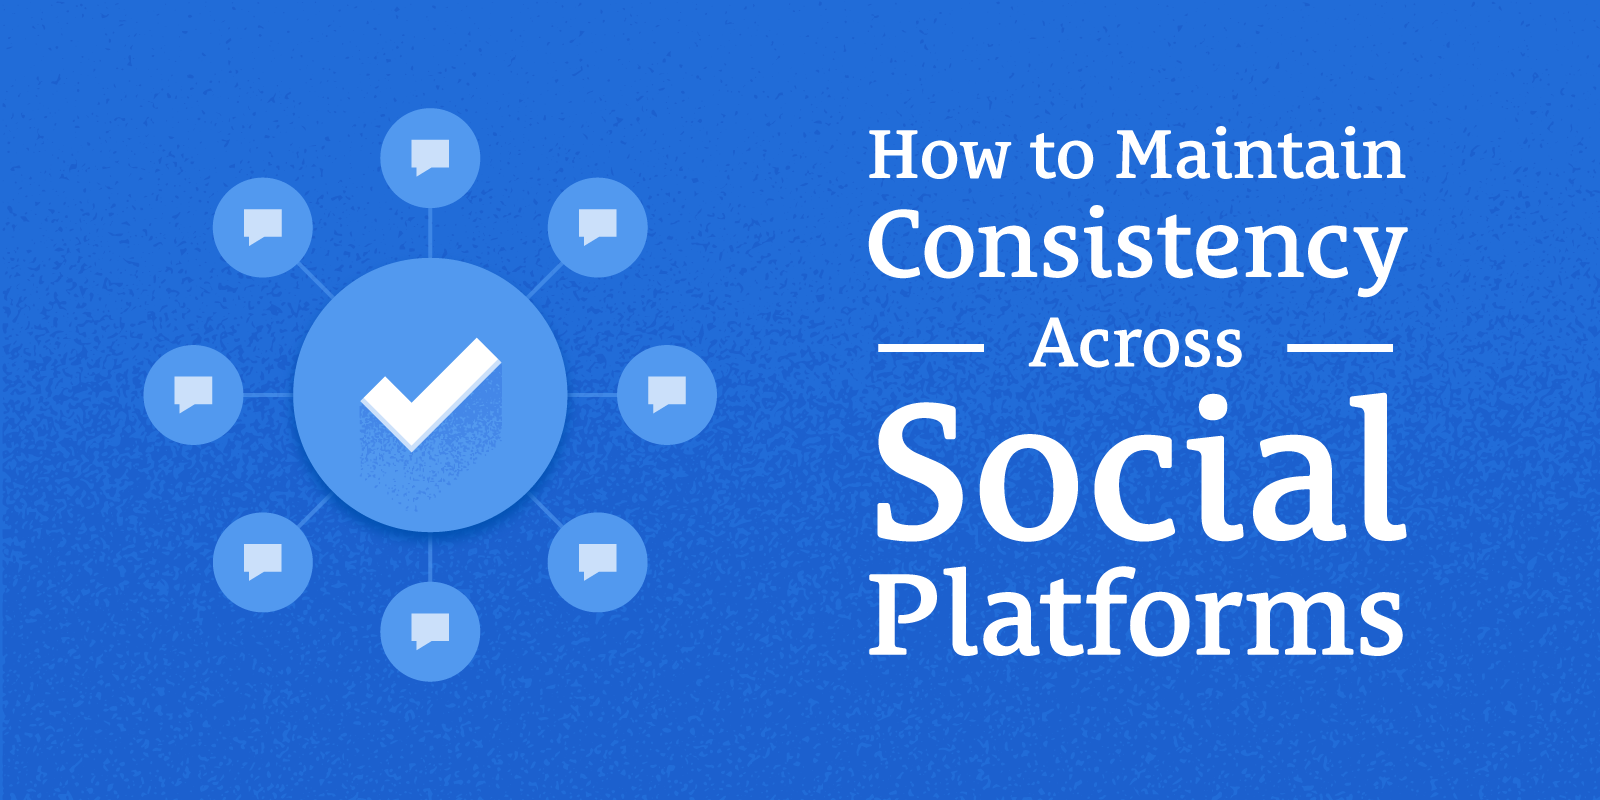 How To Maintain Consistency Across Social Platforms